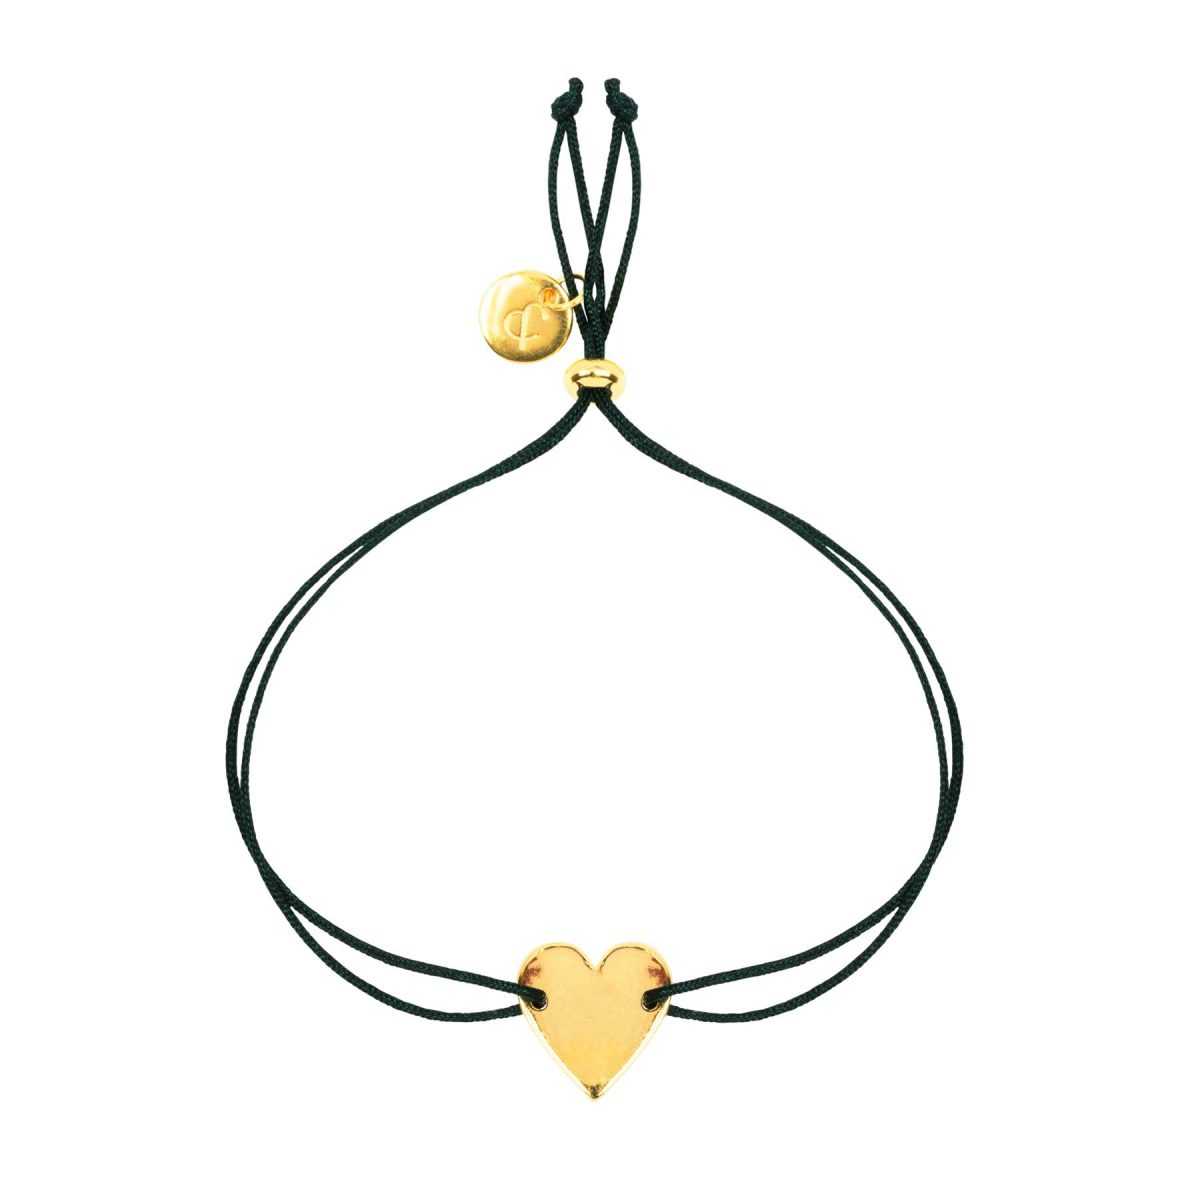 &anne bracelet - 24k gold plated heart charm with satin black cord